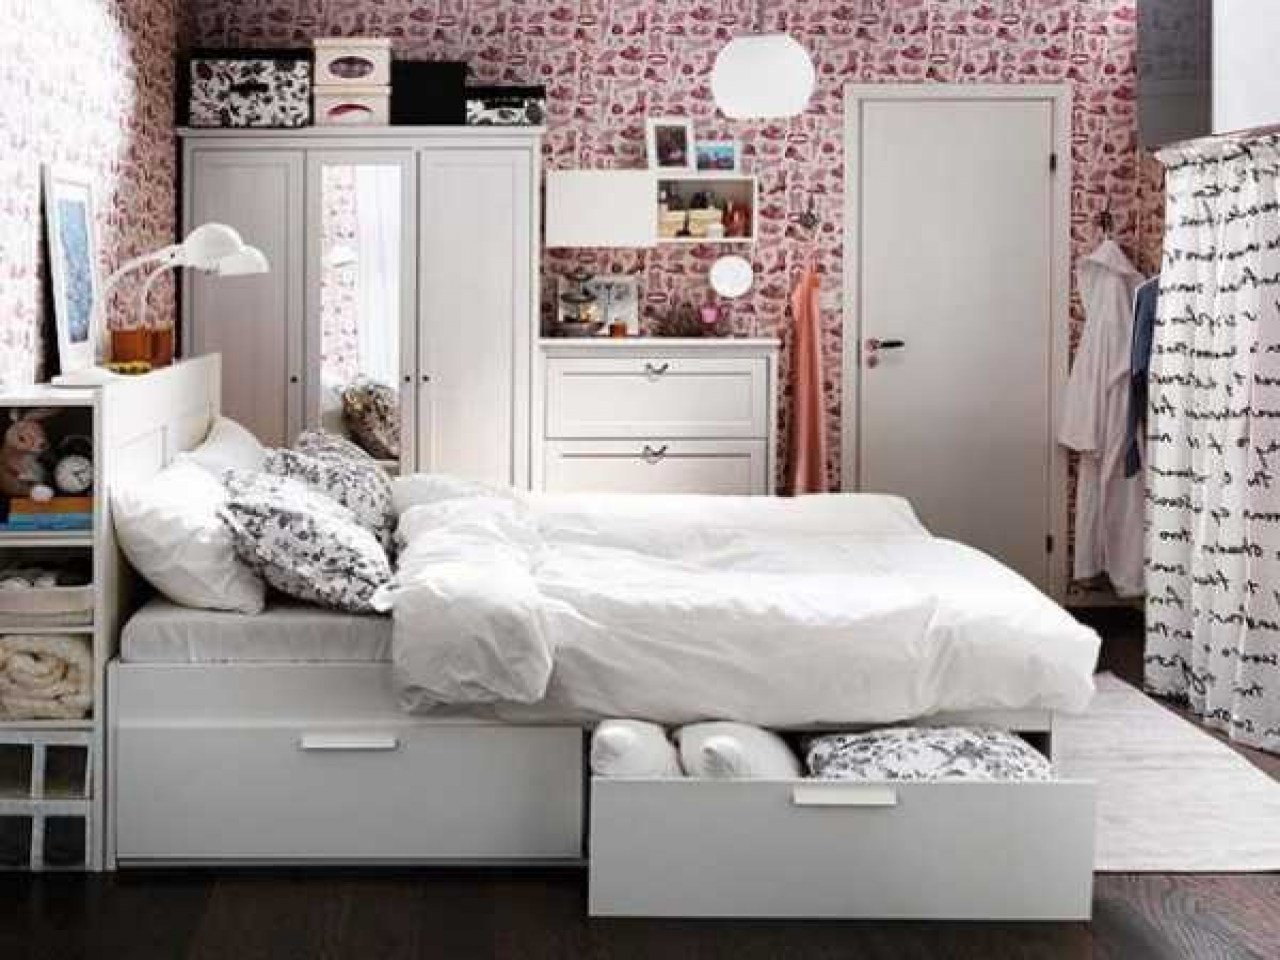 Best Bedroom Storage Ideas For Small Spaces Space Saving With Pictures